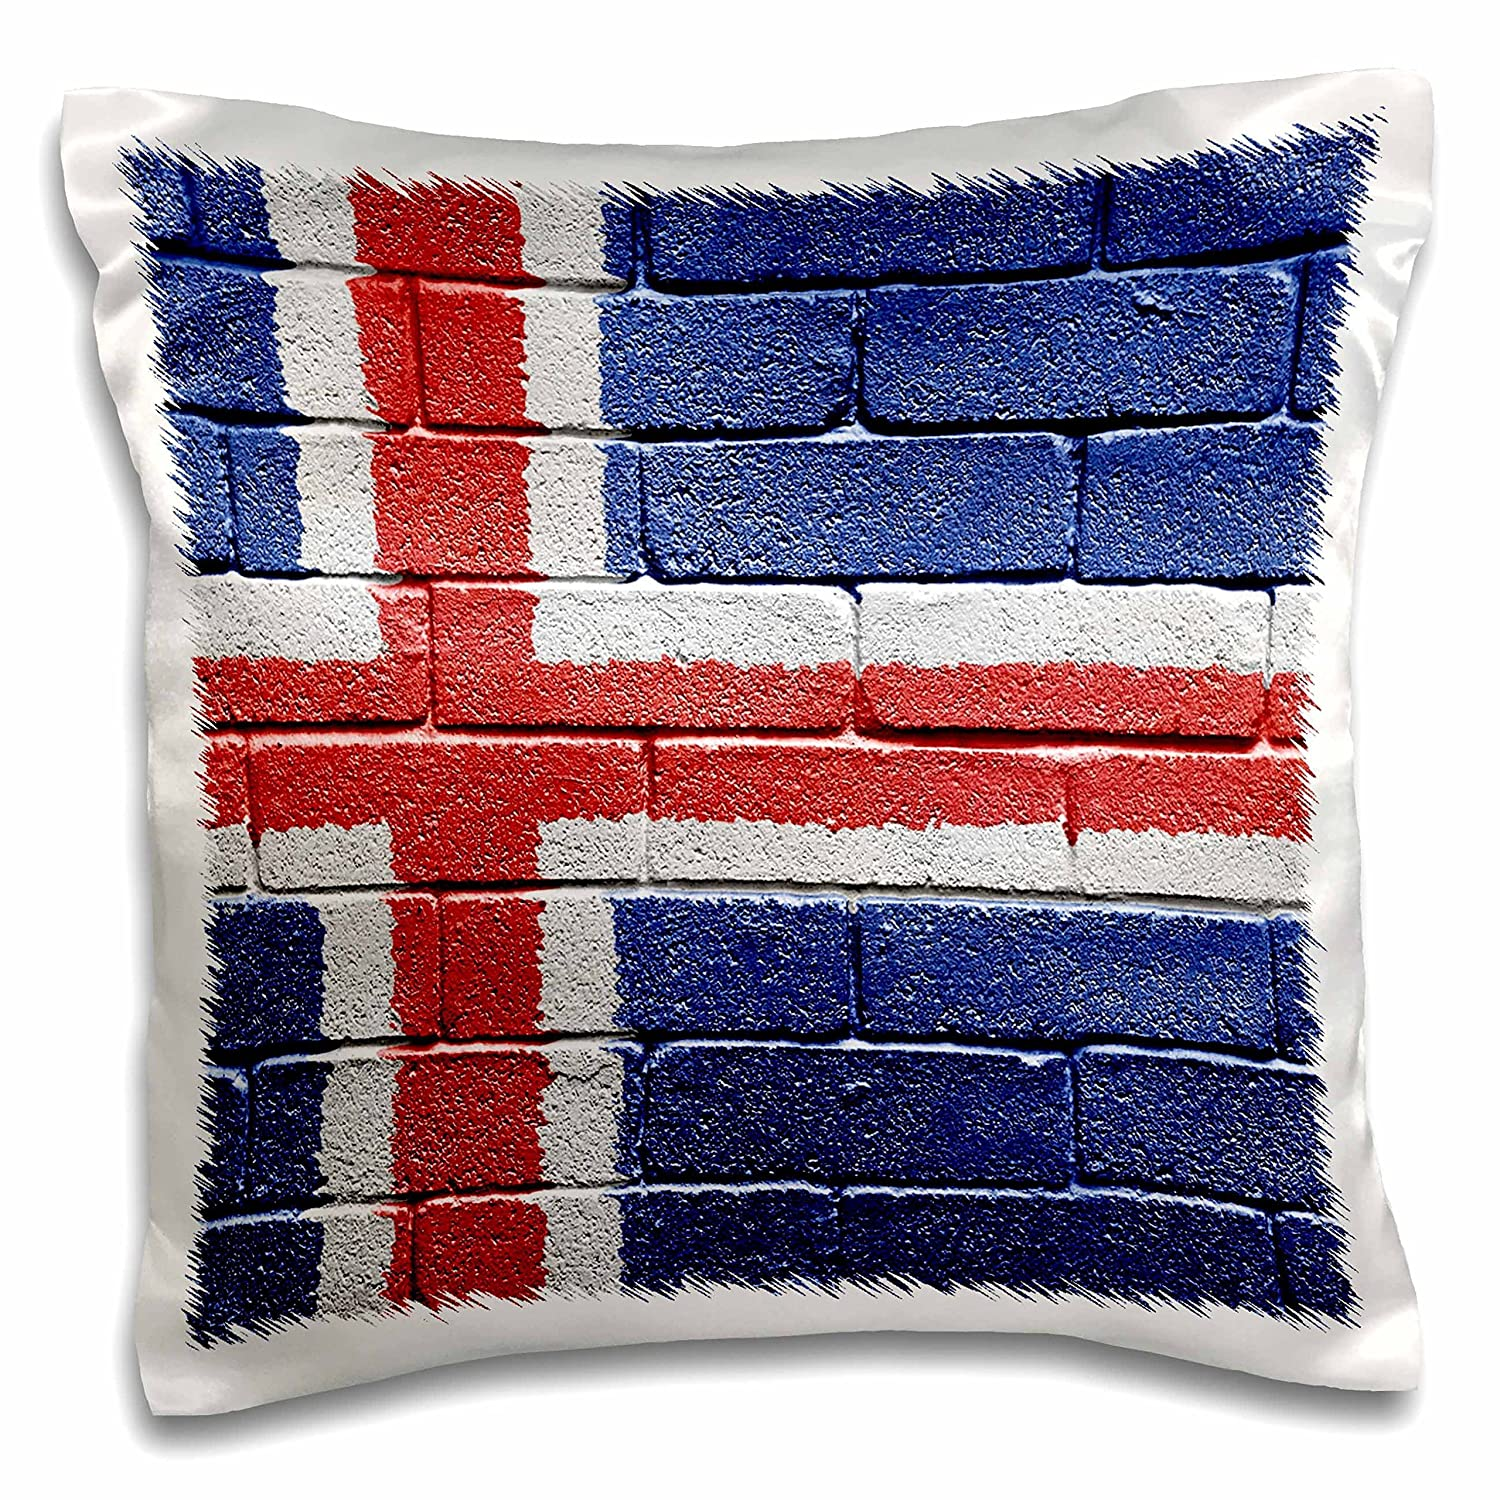 3D Rose National Flag Painted onto A Brick Wall Icelandic Design Pillowcase 16' x 16'